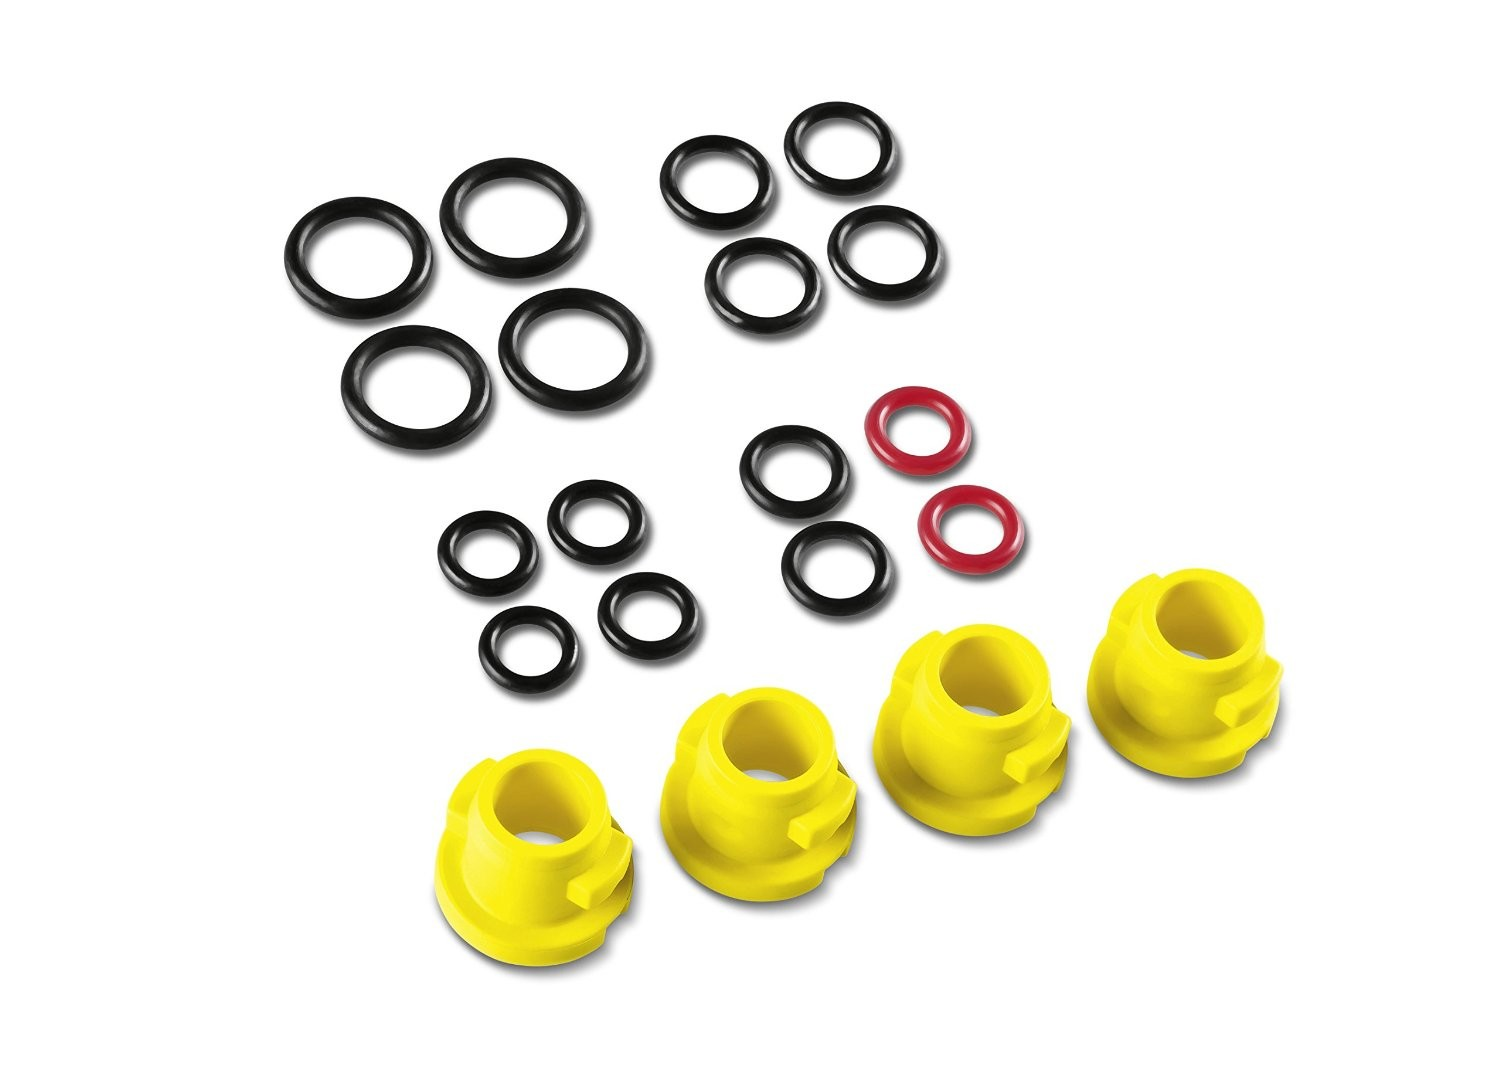 Kärcher 2.640-729.0 O-Ring Set